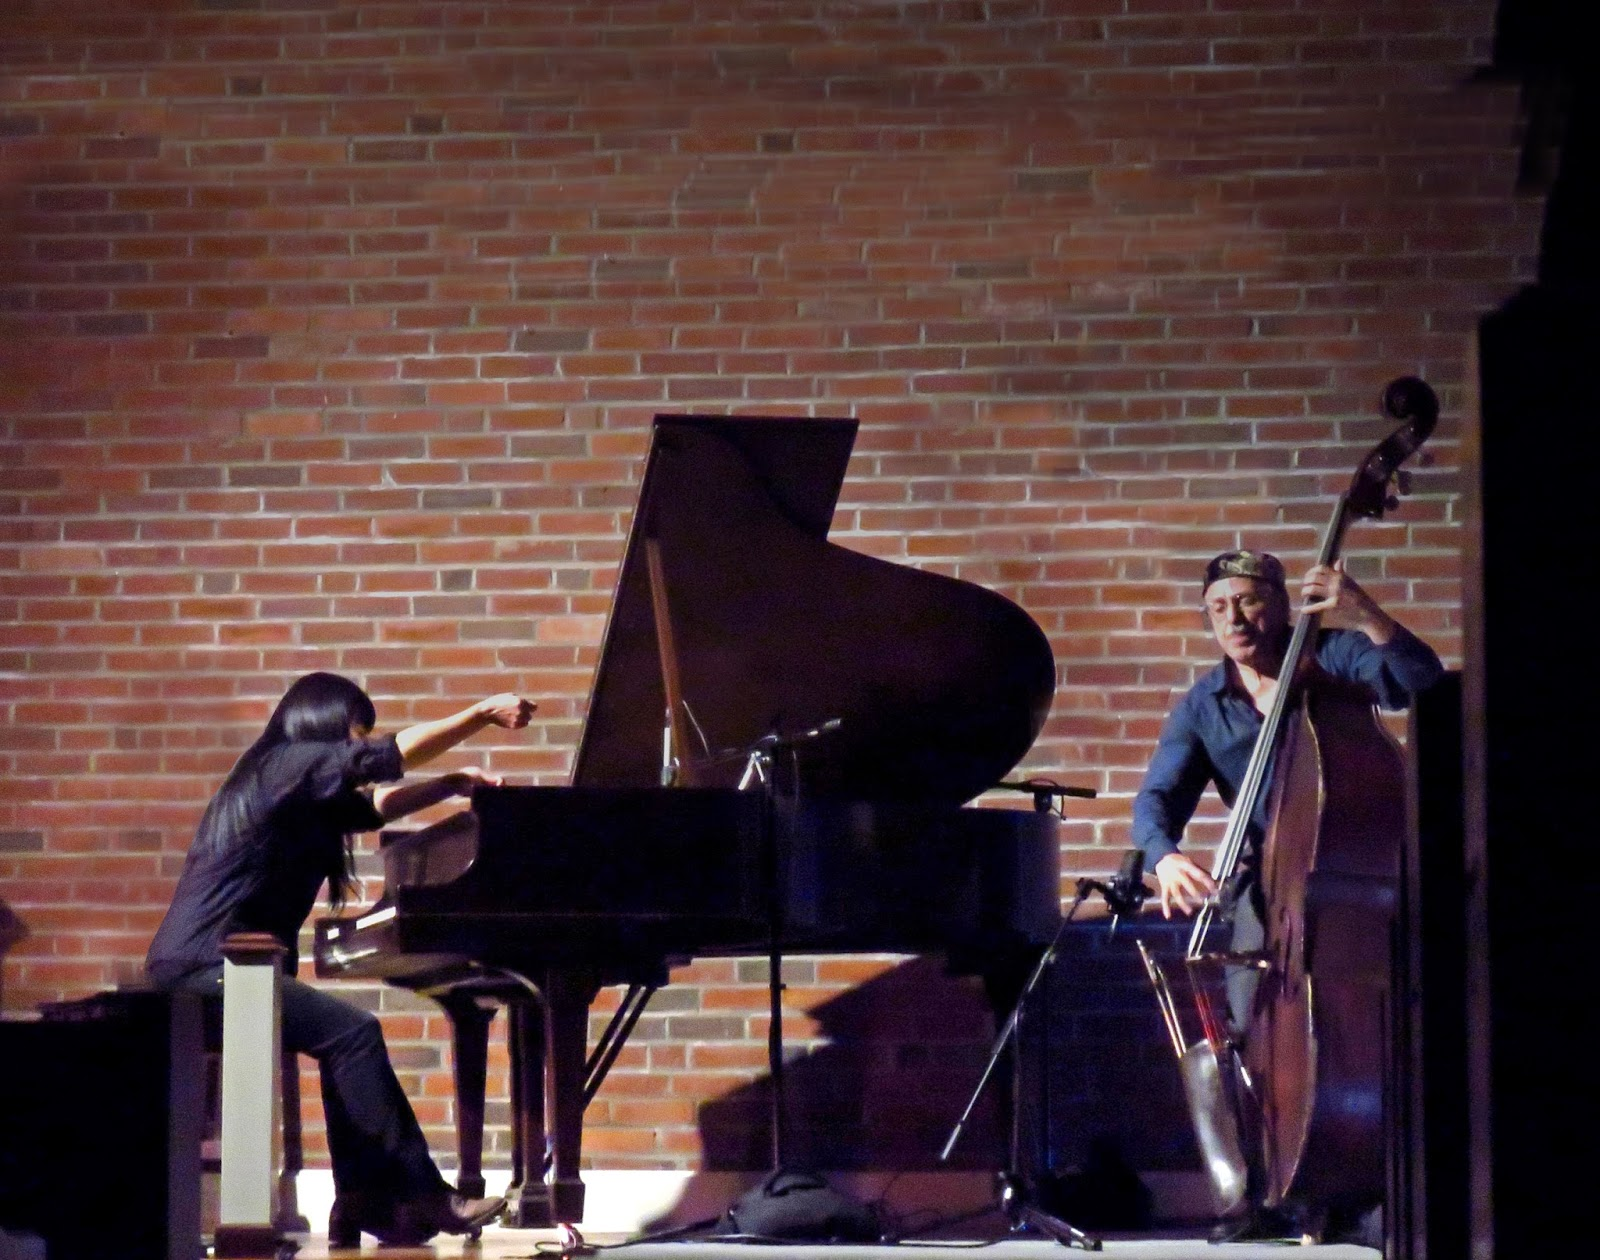 Great Improvisers Reveal A Lifetime Of Experience And Artistry In Every Note For Both Pianist Satoko Fujii Bassist Joe Fonda That Brings To Bear An